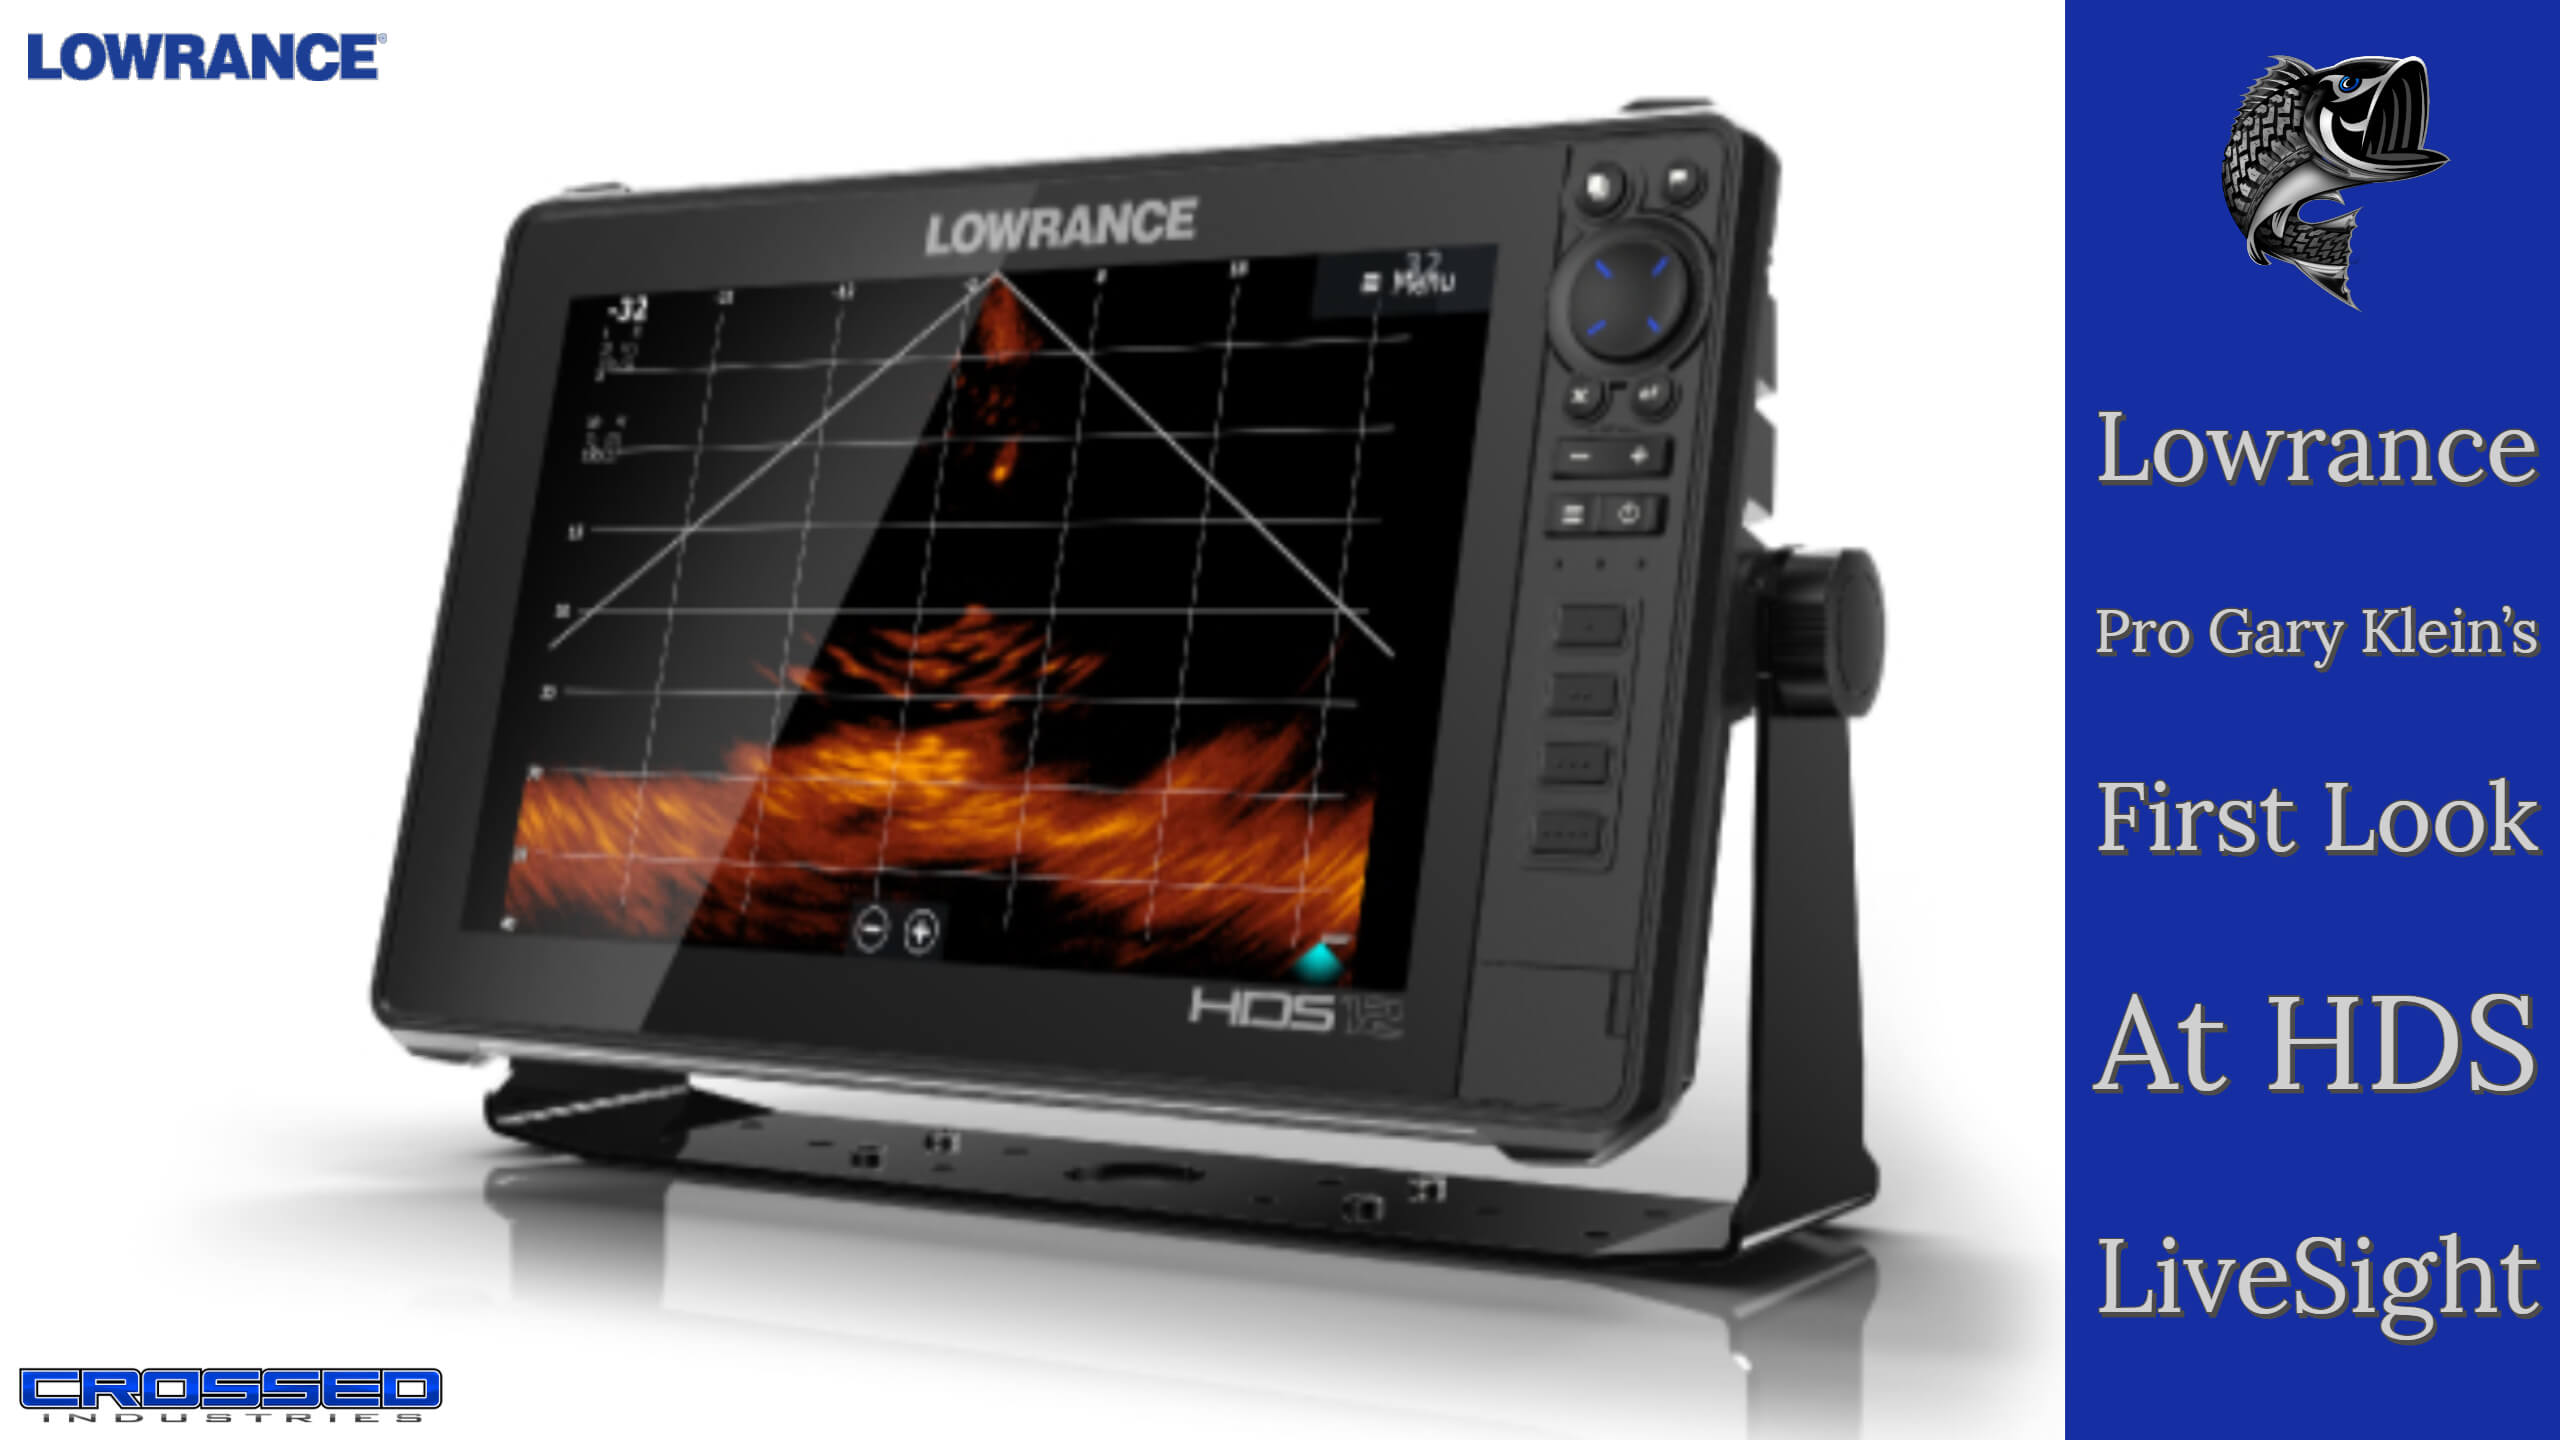 First Look At The Lowrance LiveSight With Gary Klein - LIVESIGHT First Look